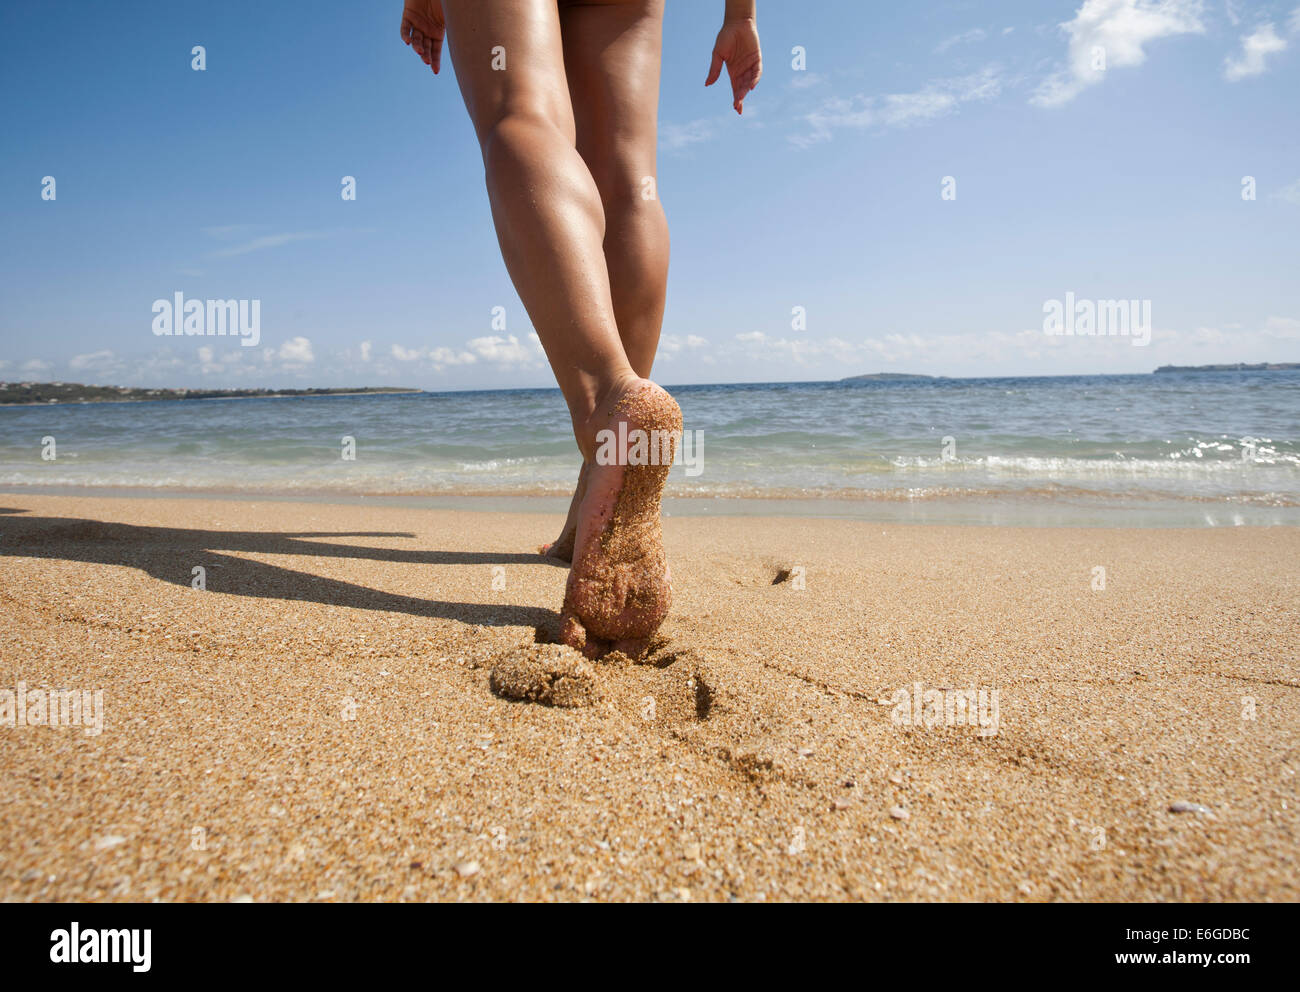 Young woman walking alone on sand beach. Closeup detail of ...